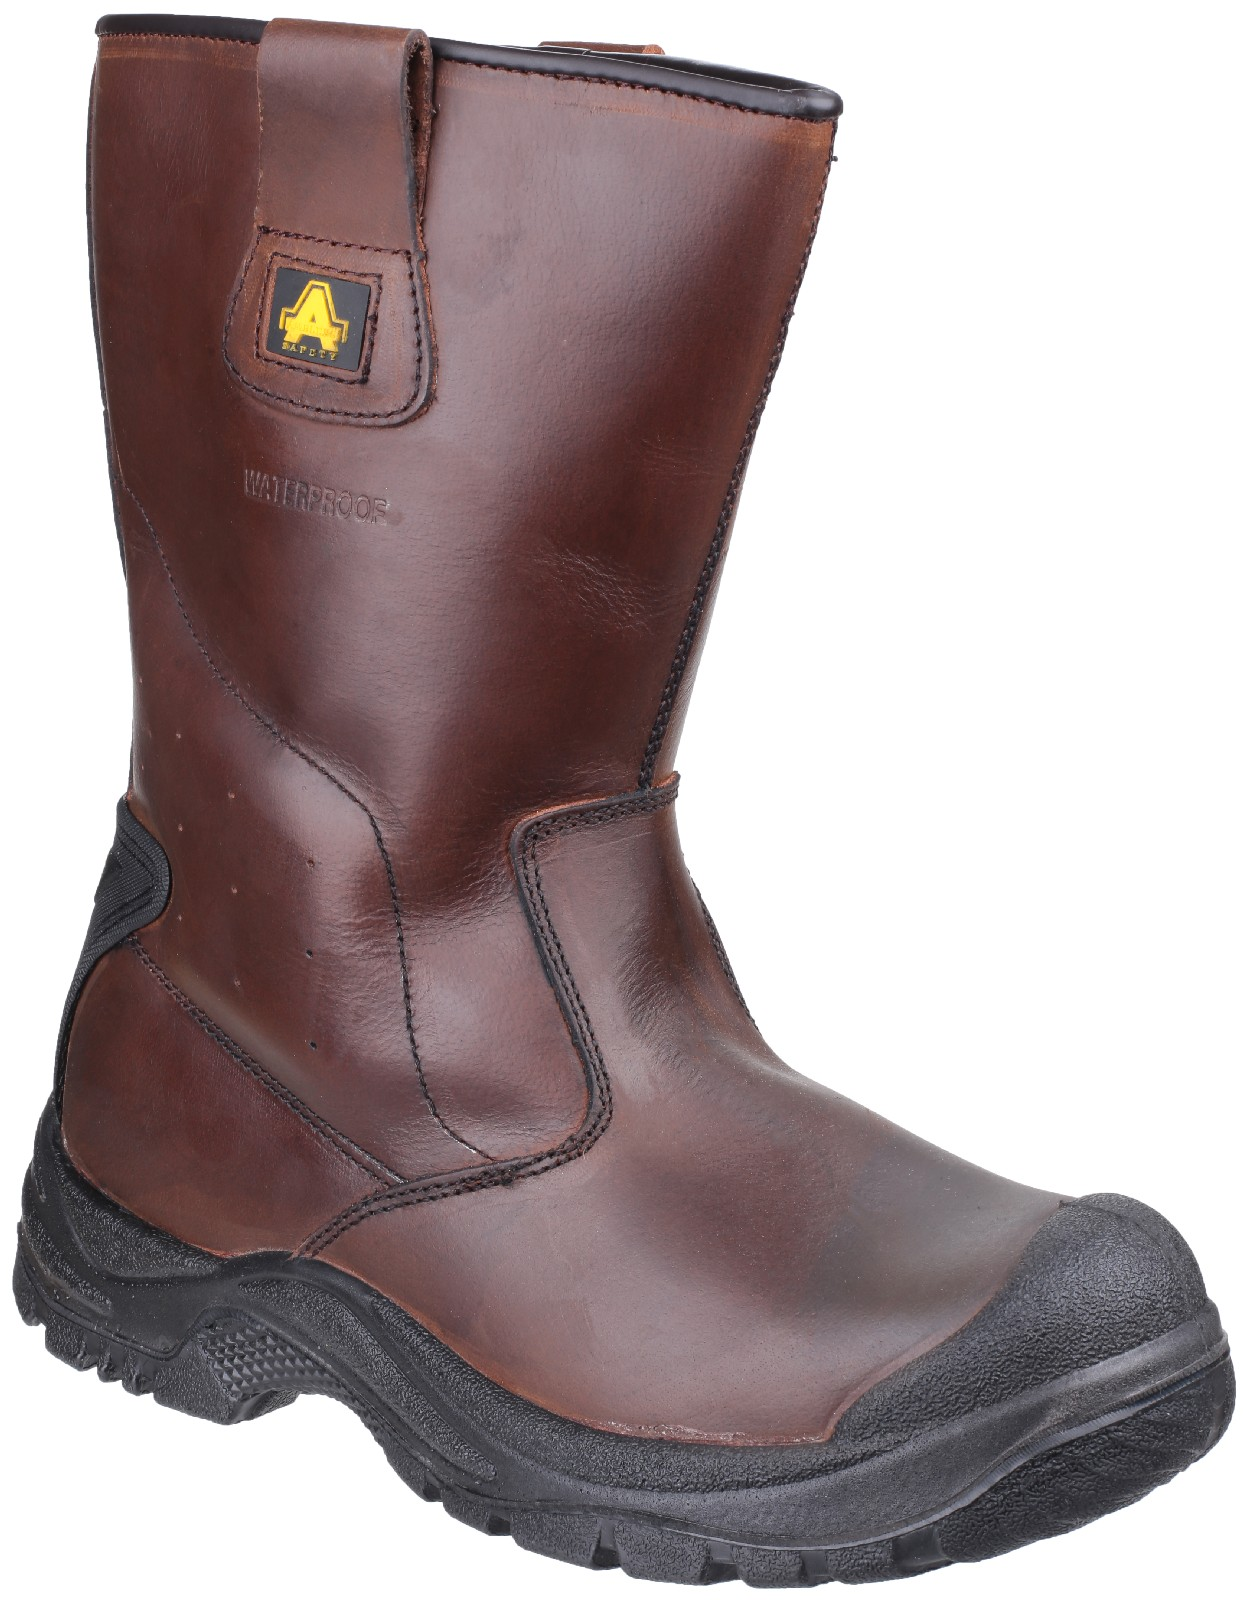 0b3f6a6dd8c Amblers Safety AS249 Cadair Waterproof S3 Pull on Rigger Boot